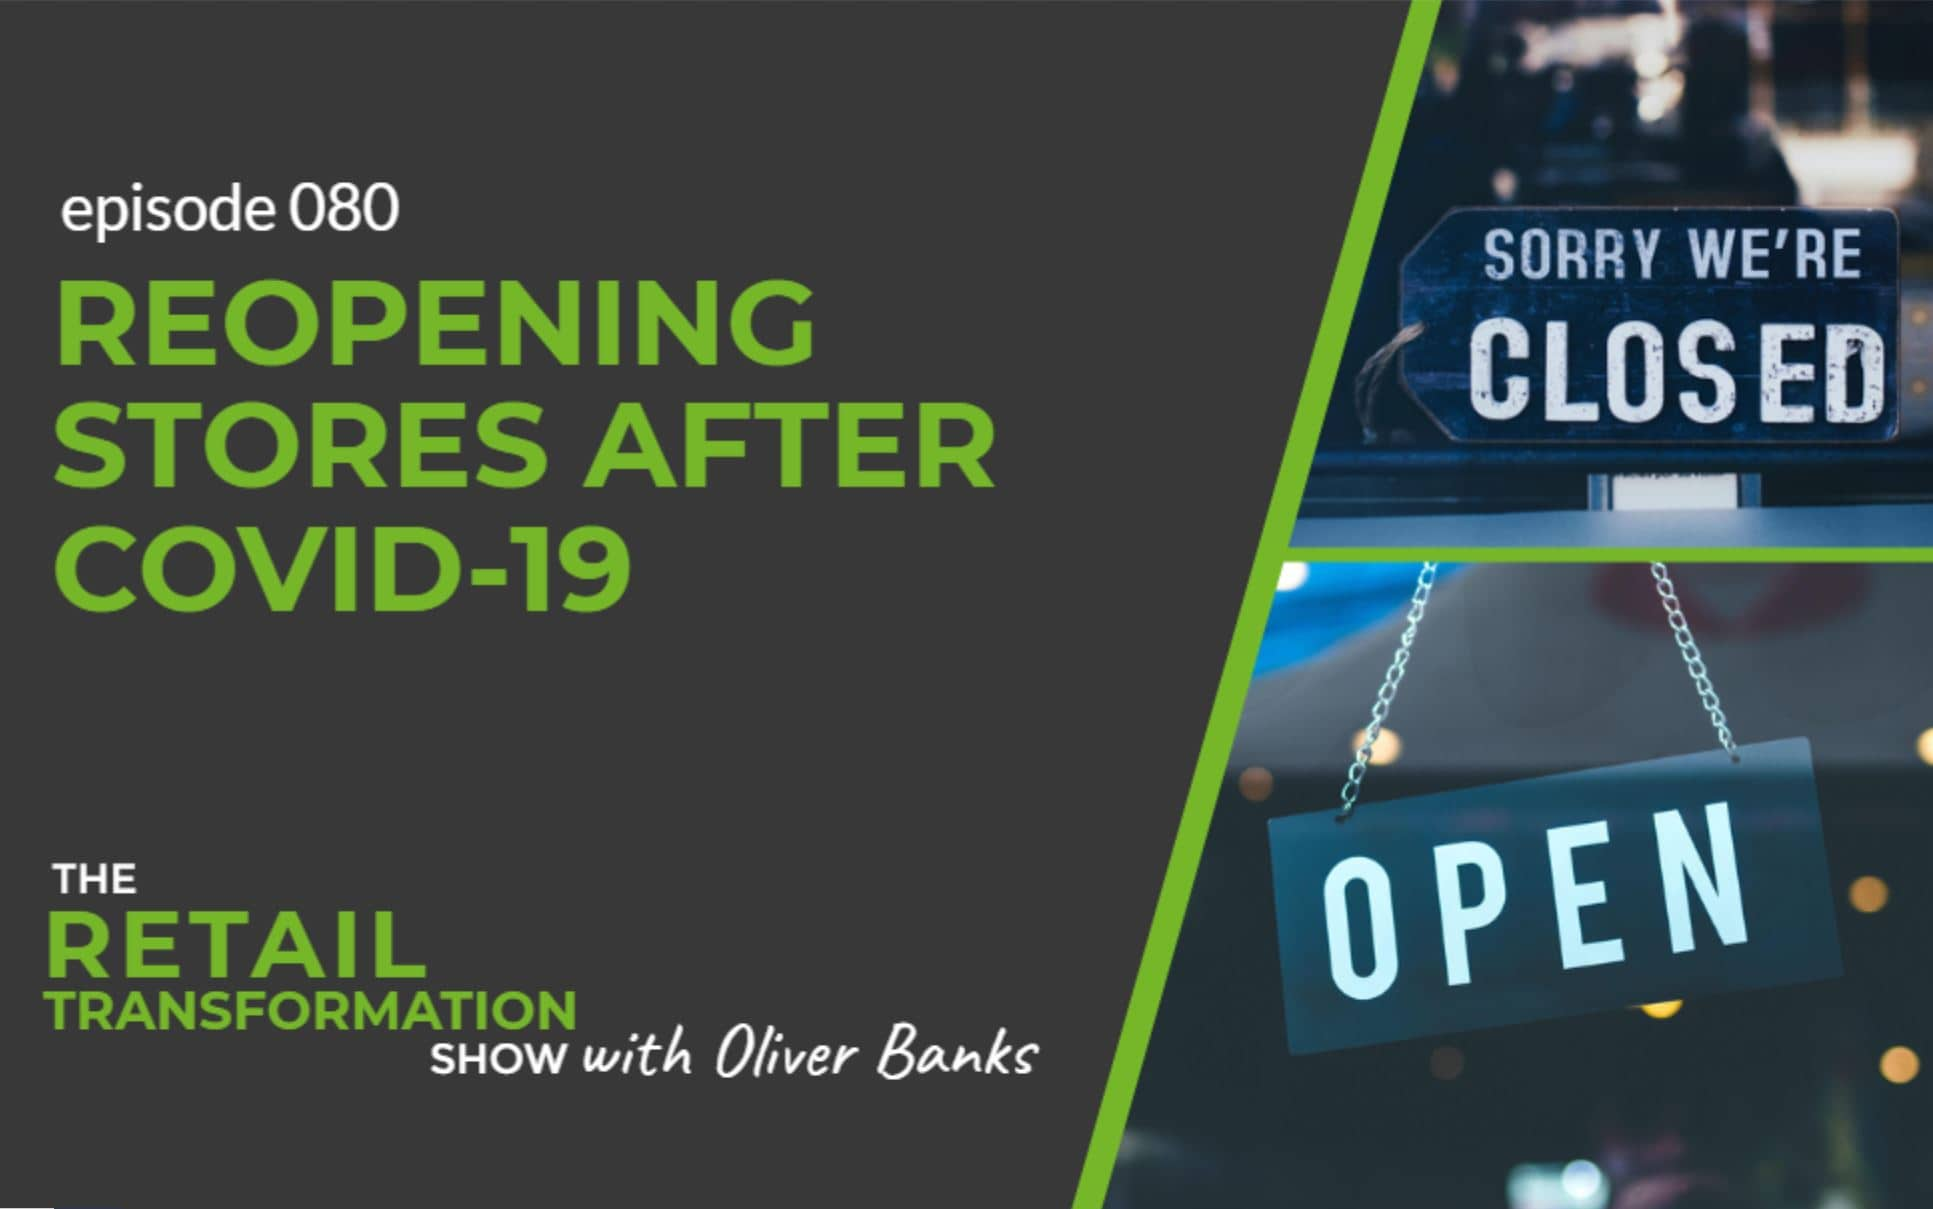 080: Reopening Stores After Covid-19 - The Retail Transformation Show with Oliver Banks